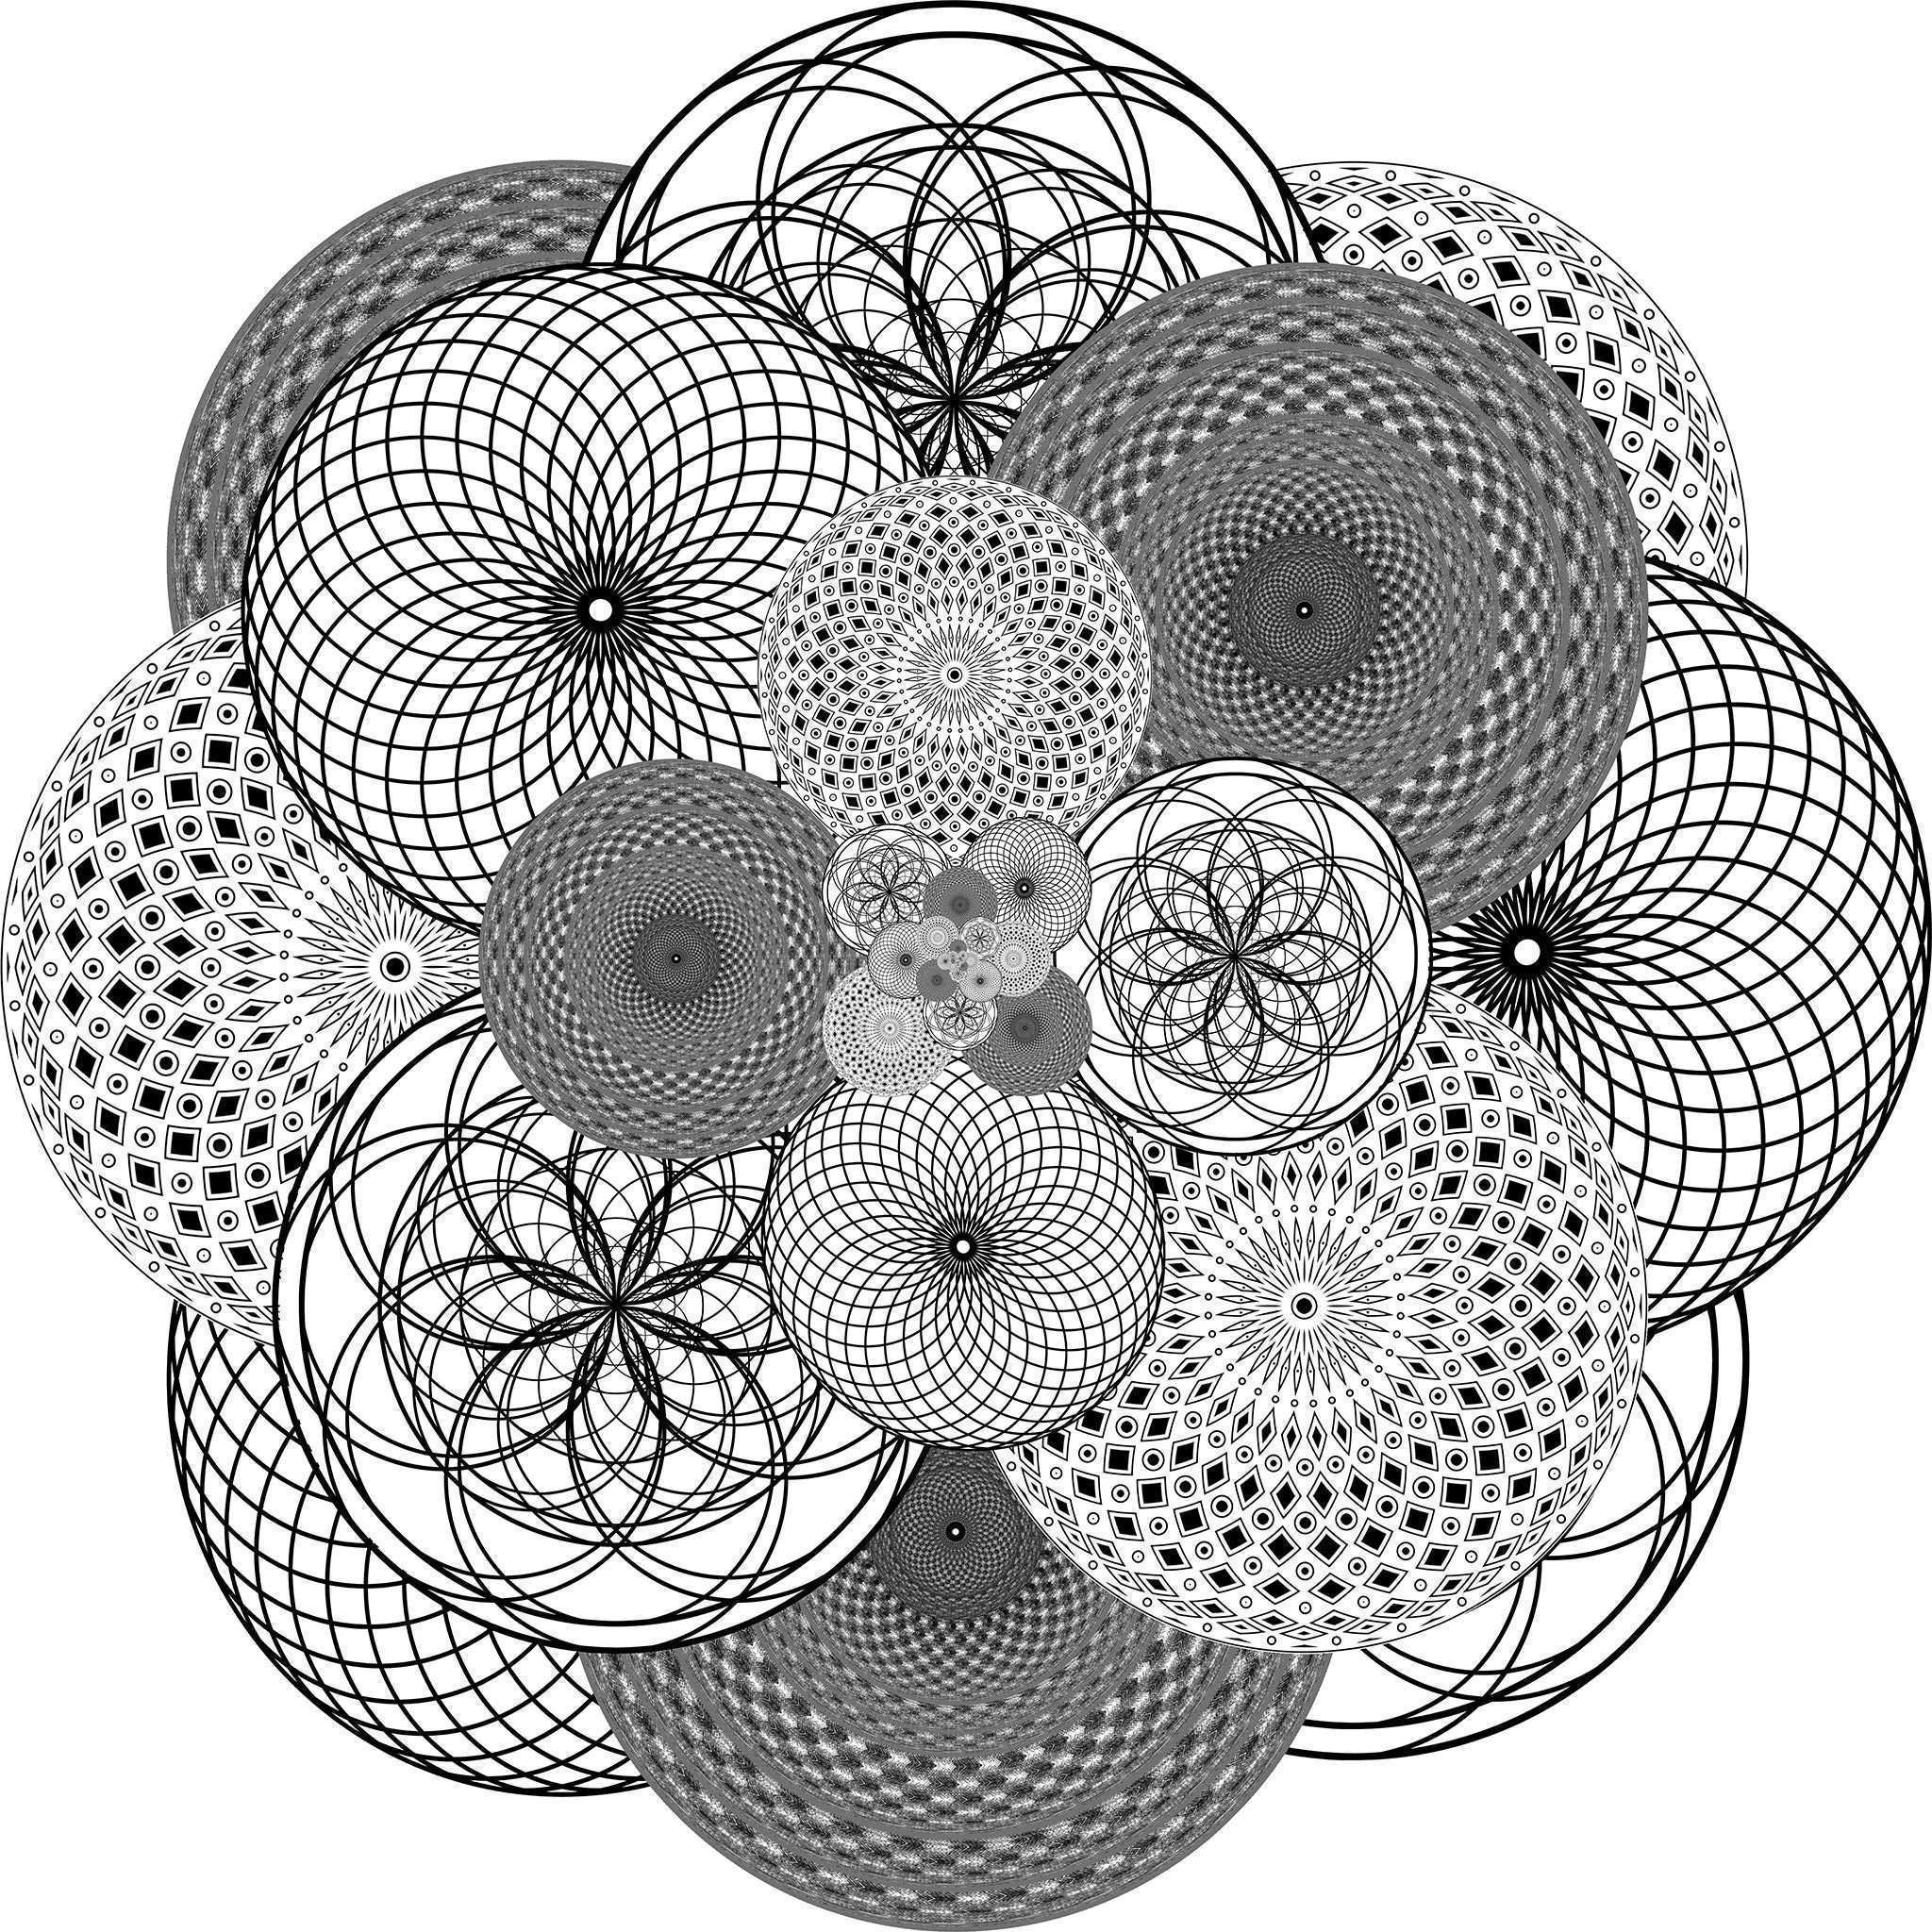 Supercluster Geometric Fabric Wall Sticker Circle Conspicuous Design